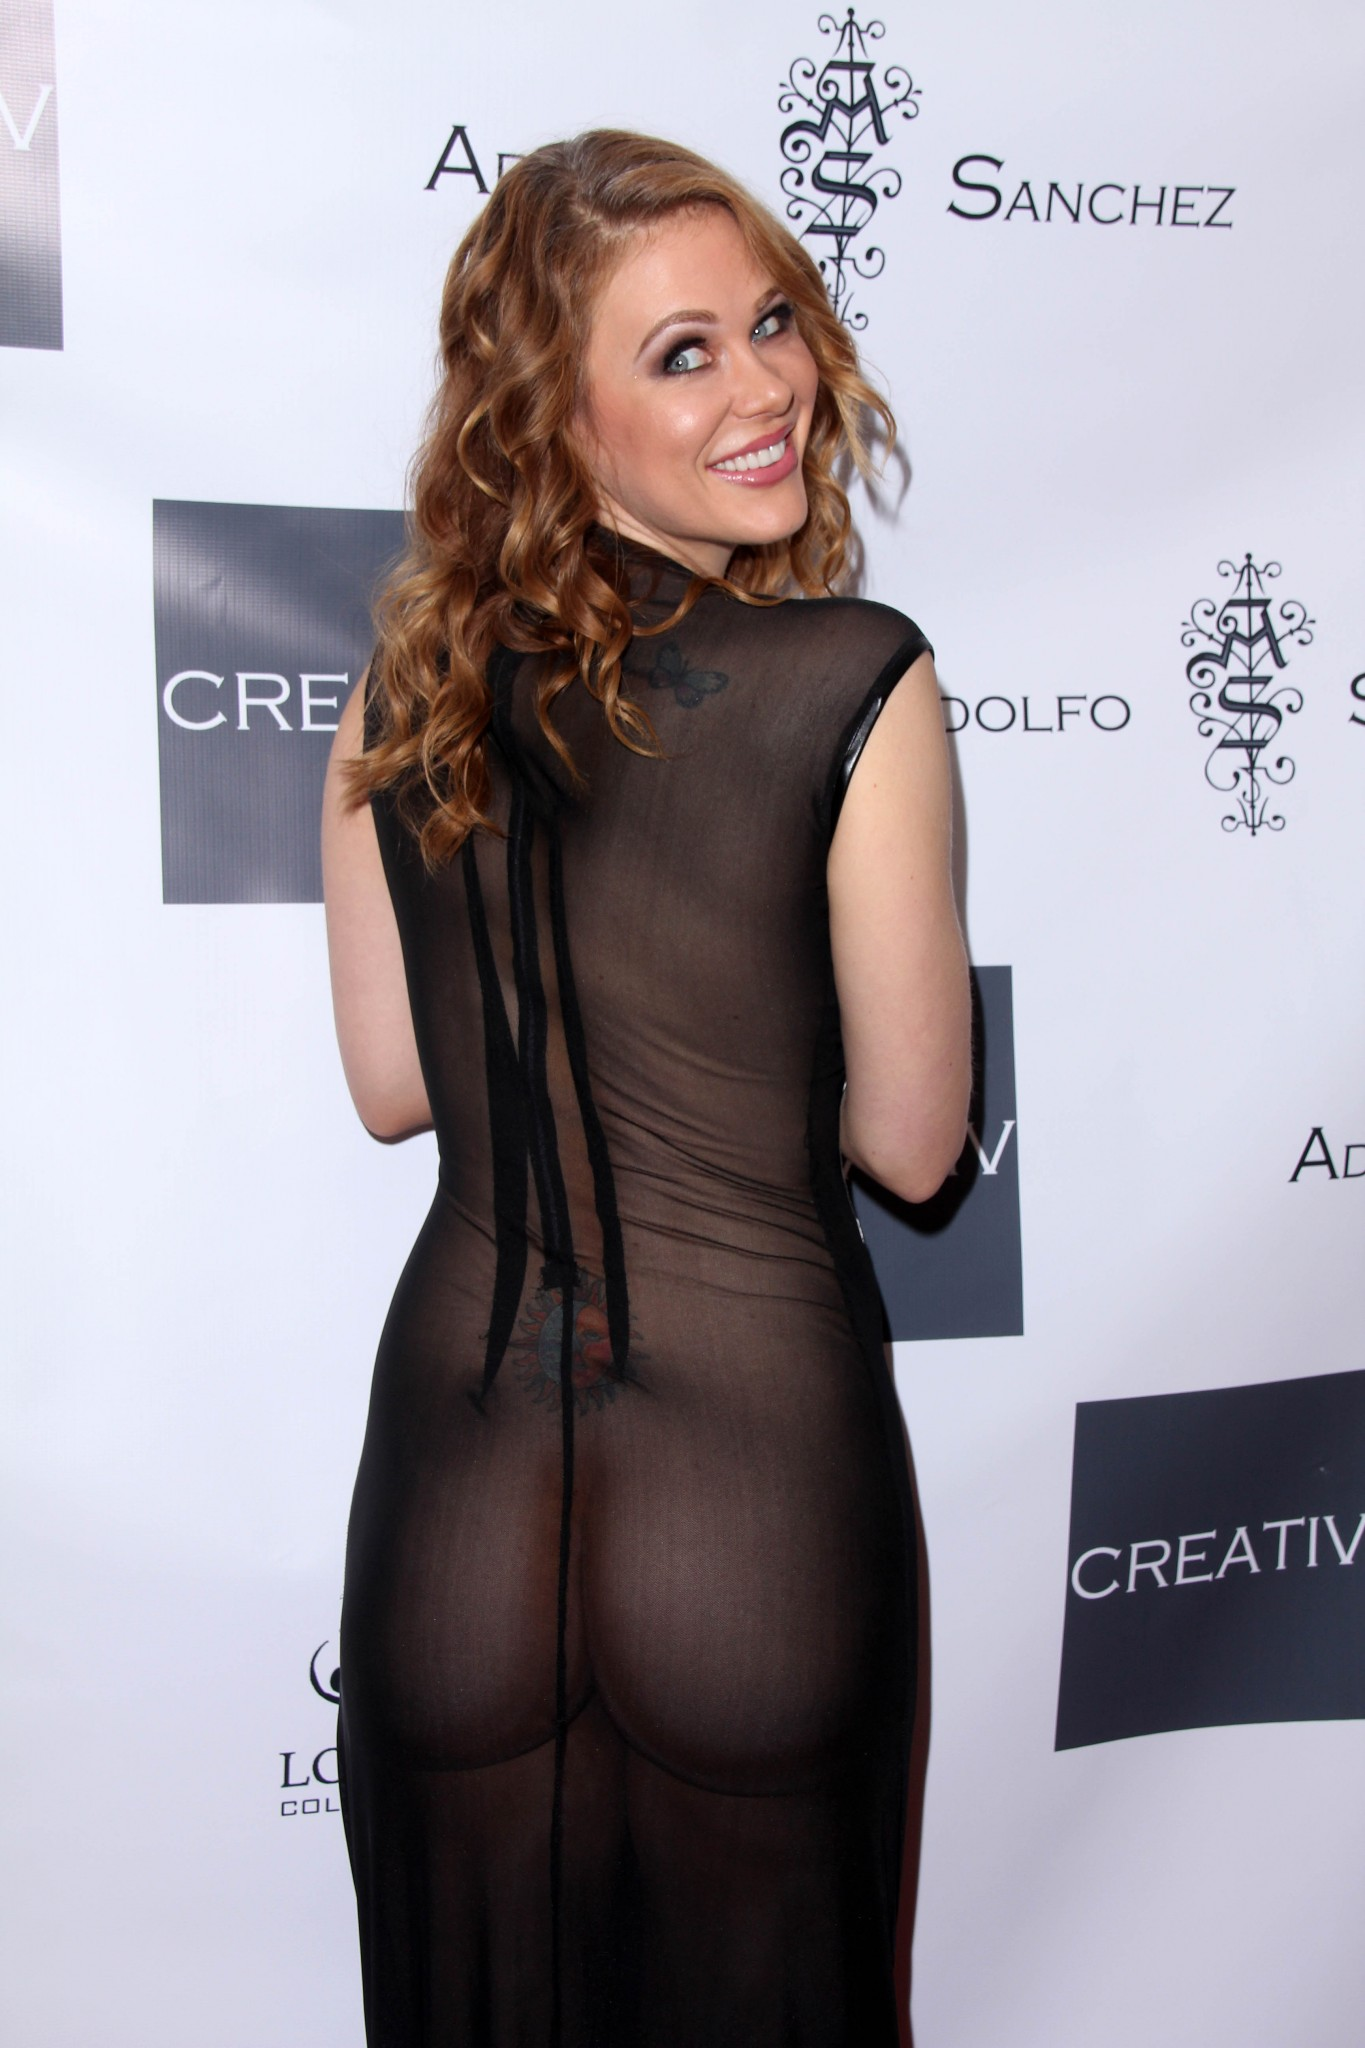 dont wear panties, Nude pics of amber heard think sometimes